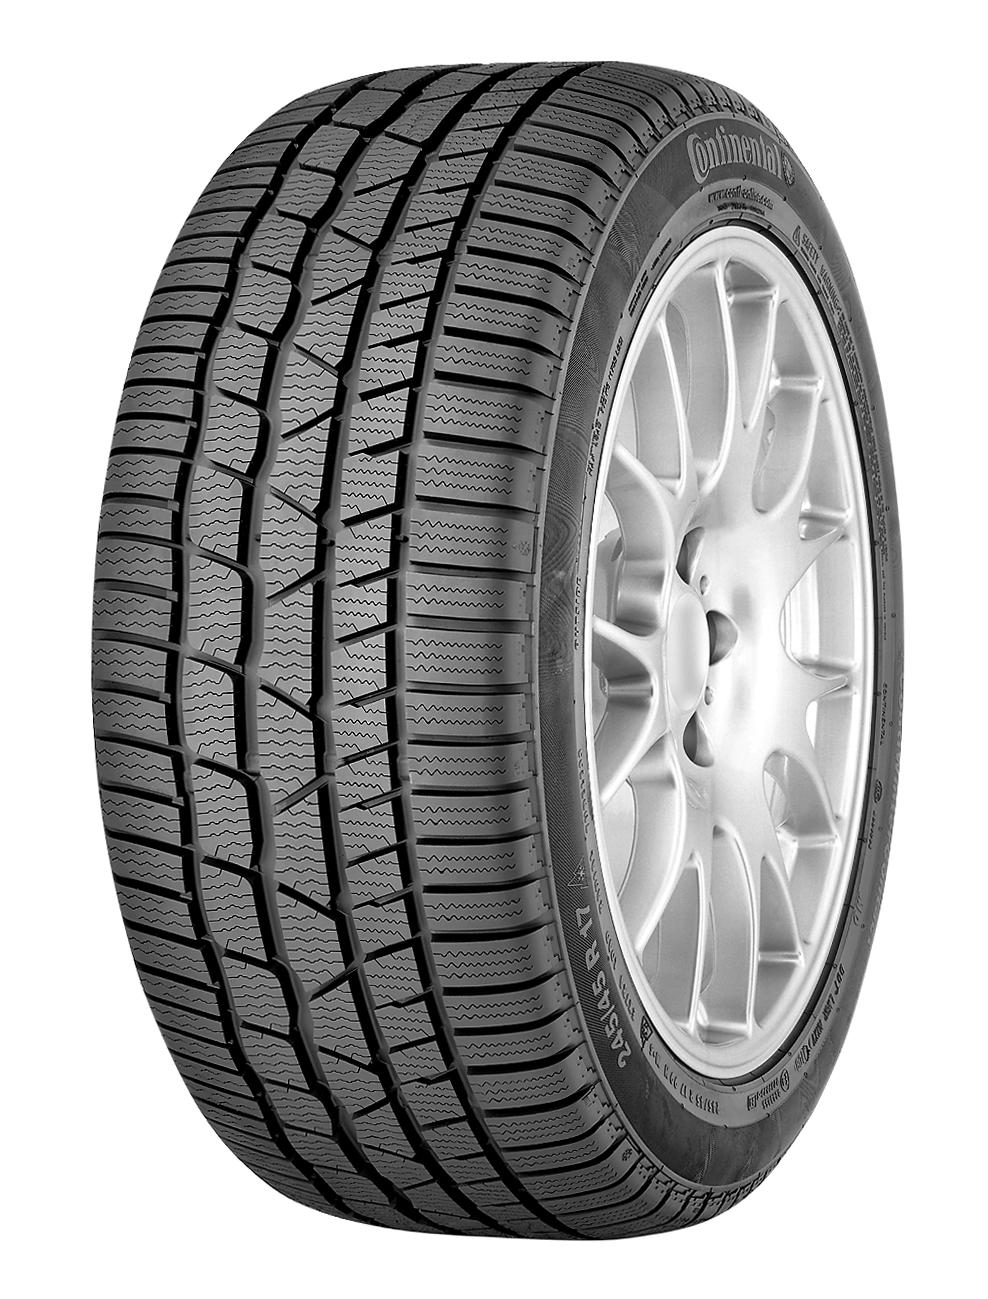 Gomme Nuove Continental 205/55 R16 91H WINTERCONTACT TS 830P MO M+S pneumatici nuovi Invernale